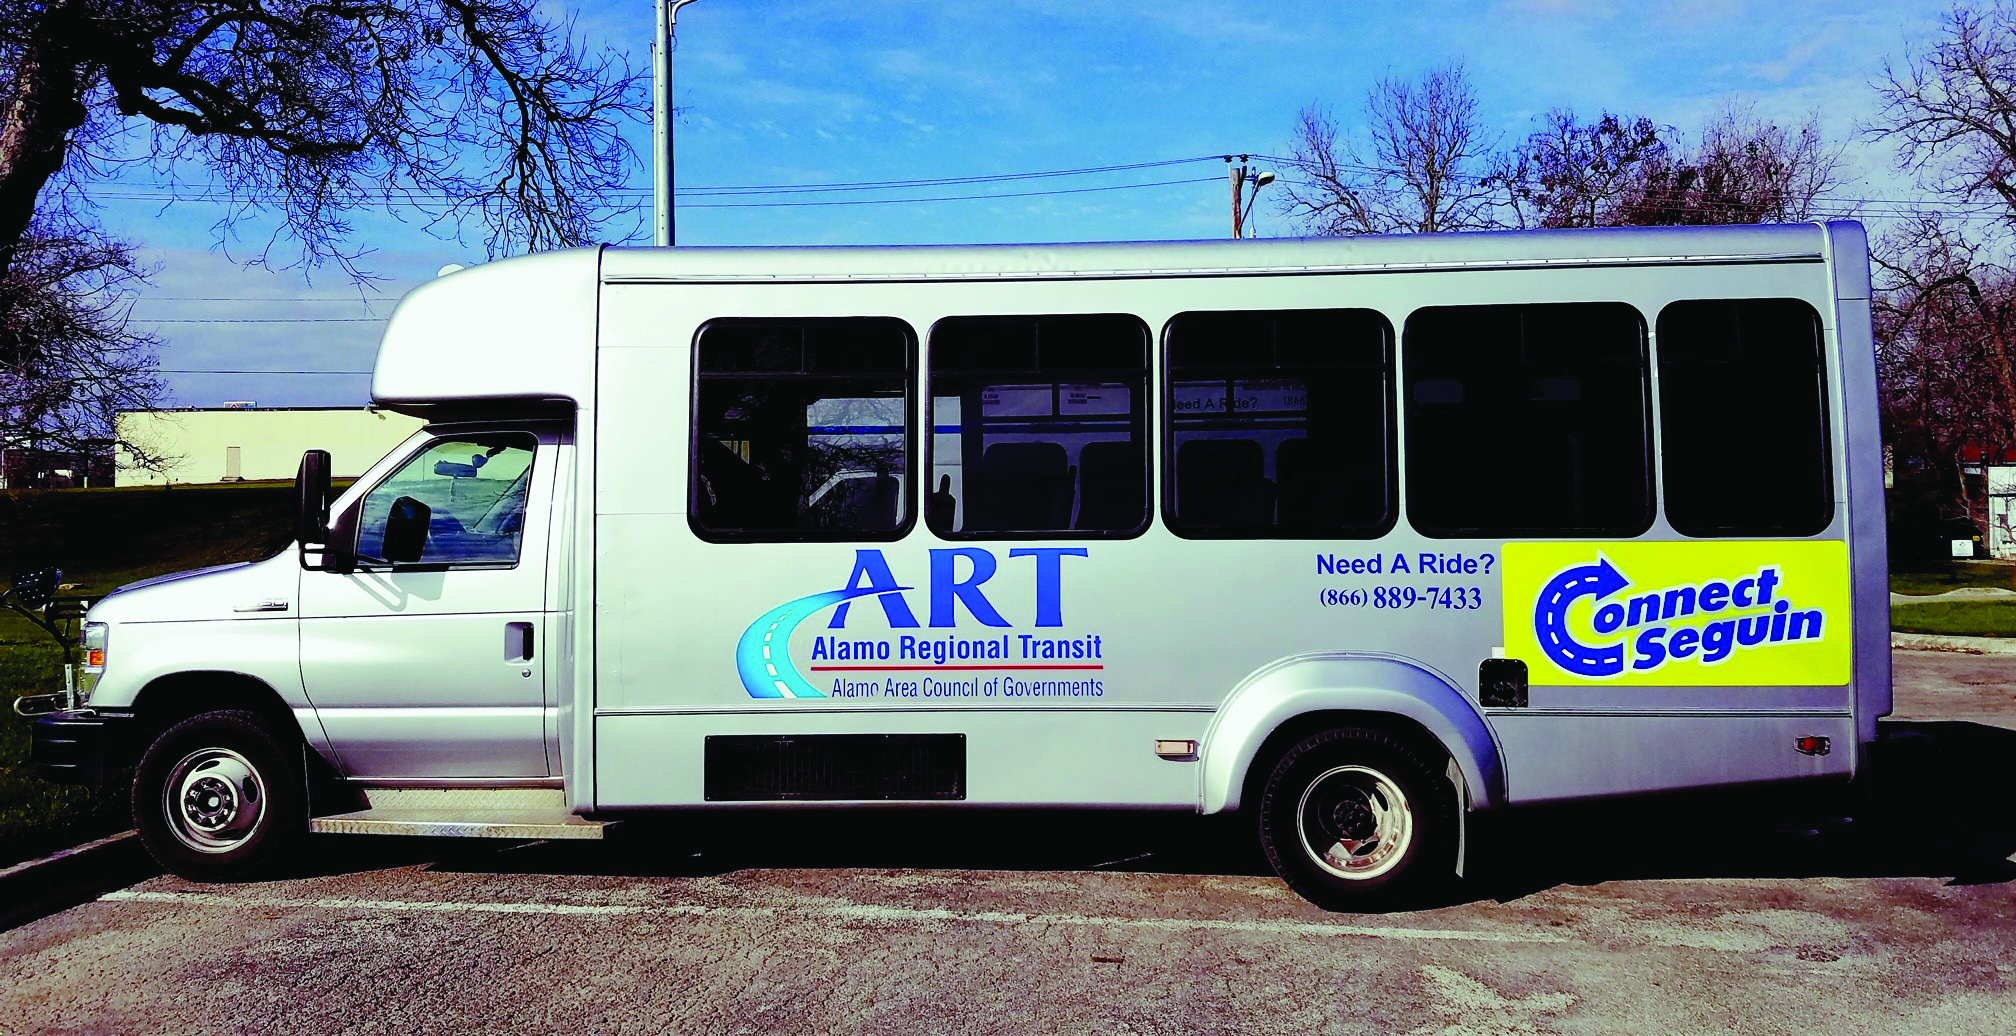 March Member of the Month - Alamo Regional Transit